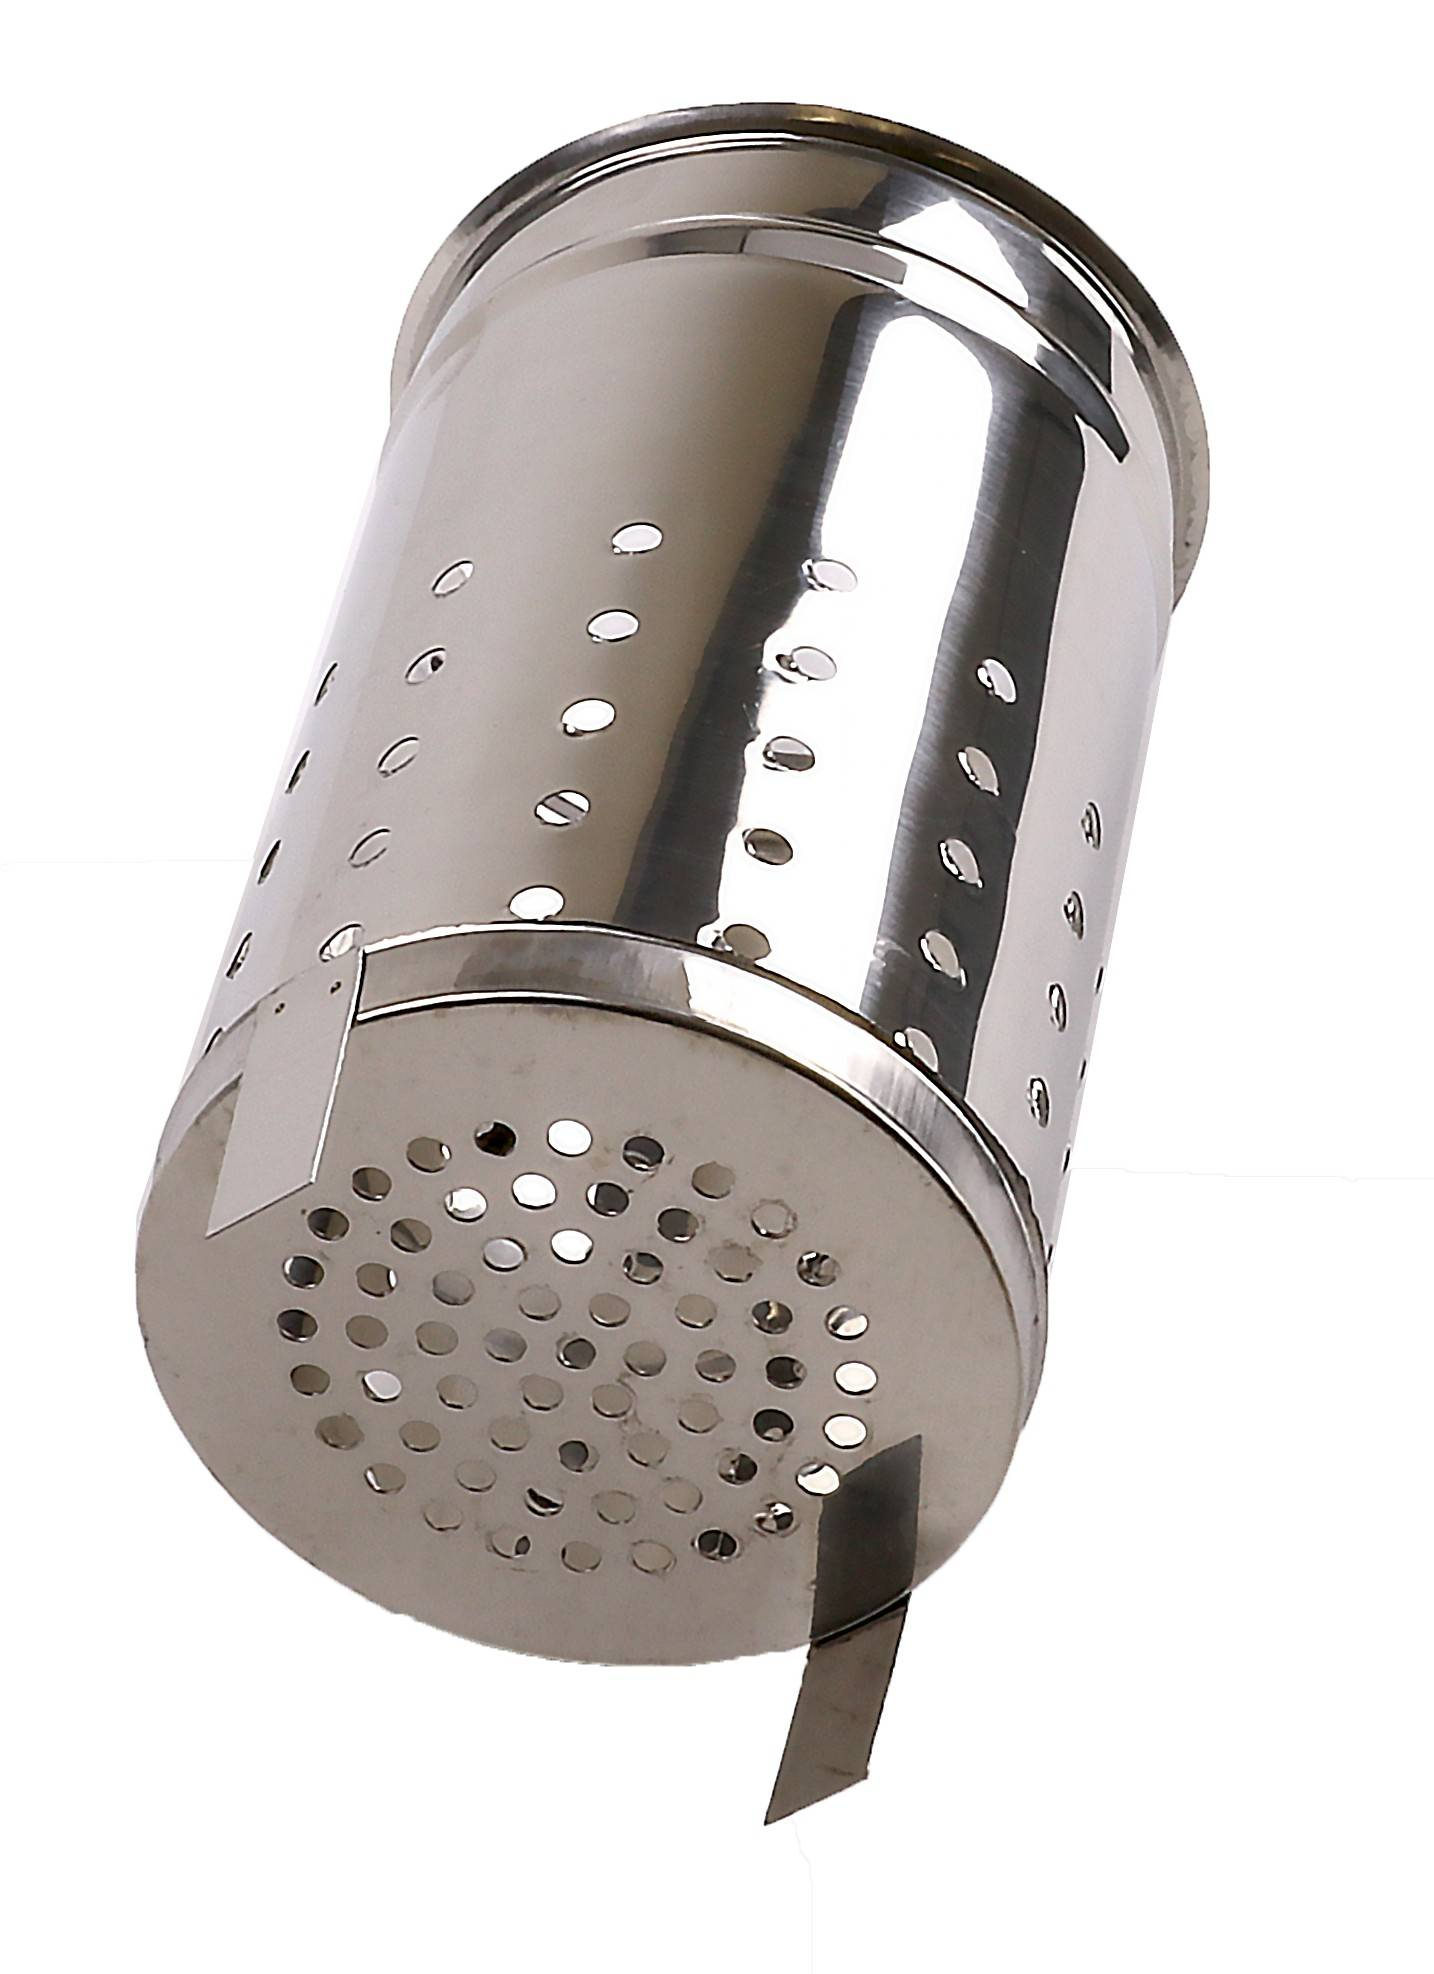 Bee Smoker High Quality Flame Resistant Design